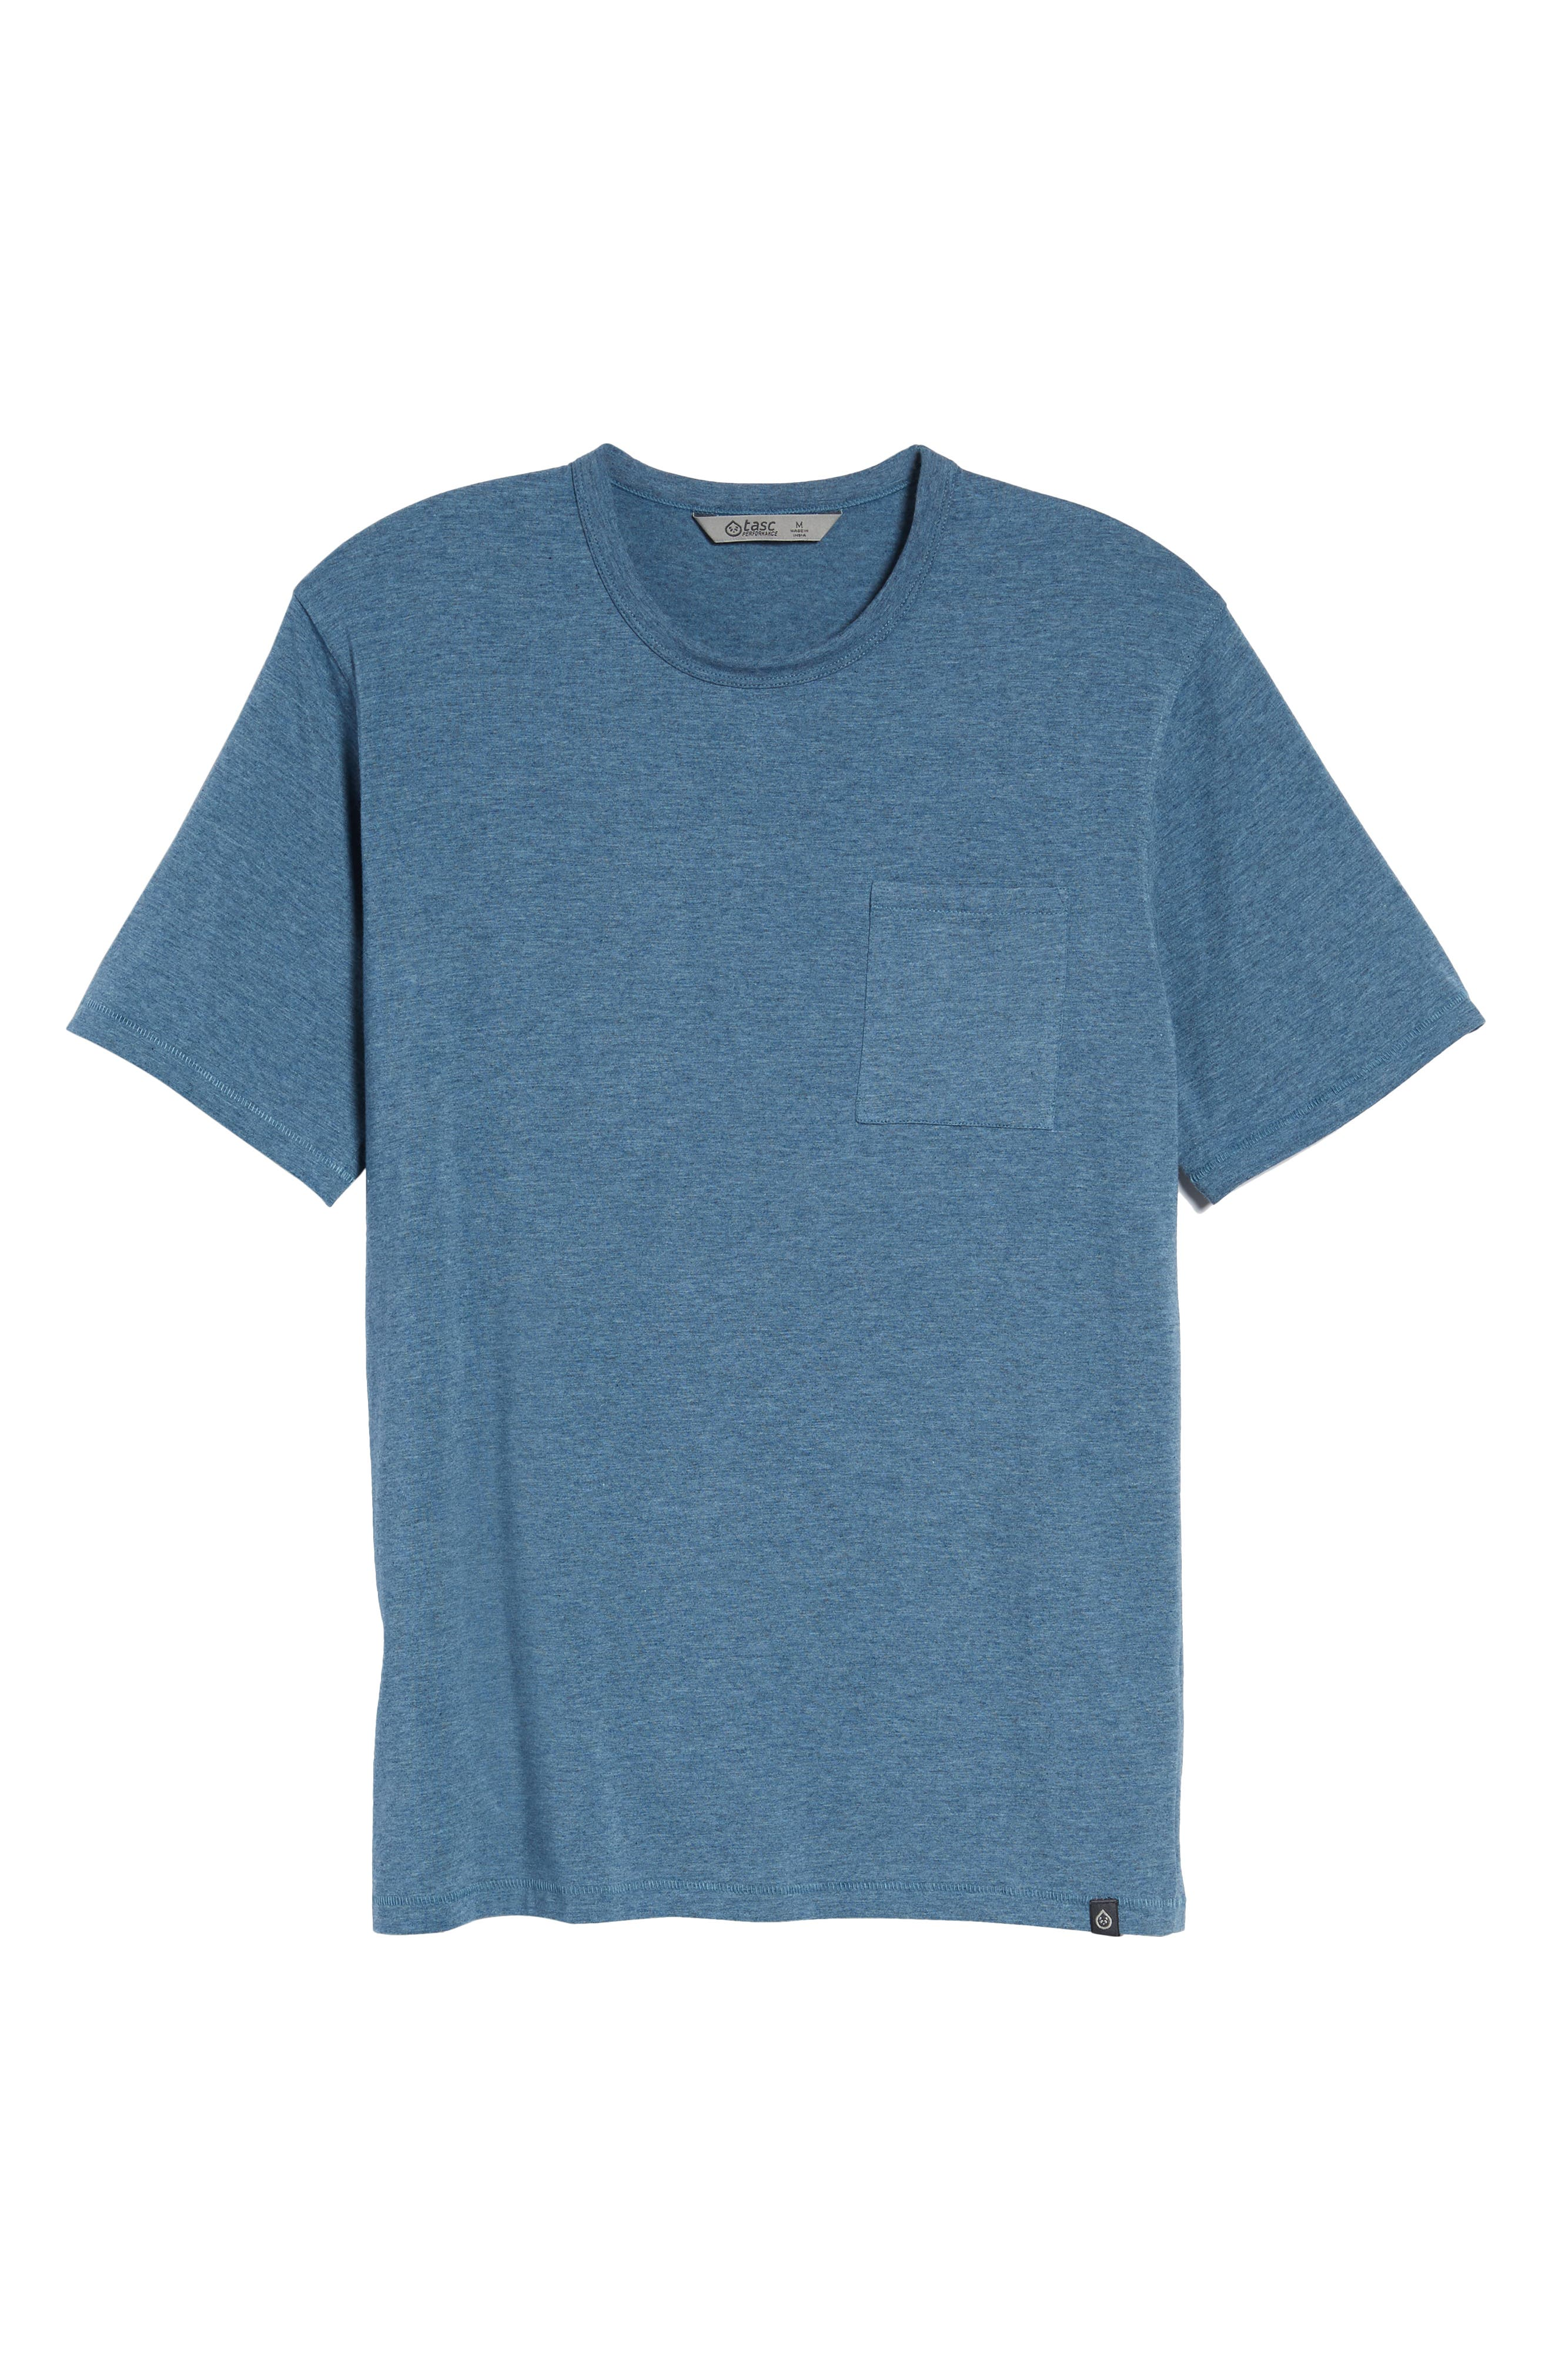 Nantucket Fitted T-Shirt,                             Alternate thumbnail 6, color,                             Indigo Heather